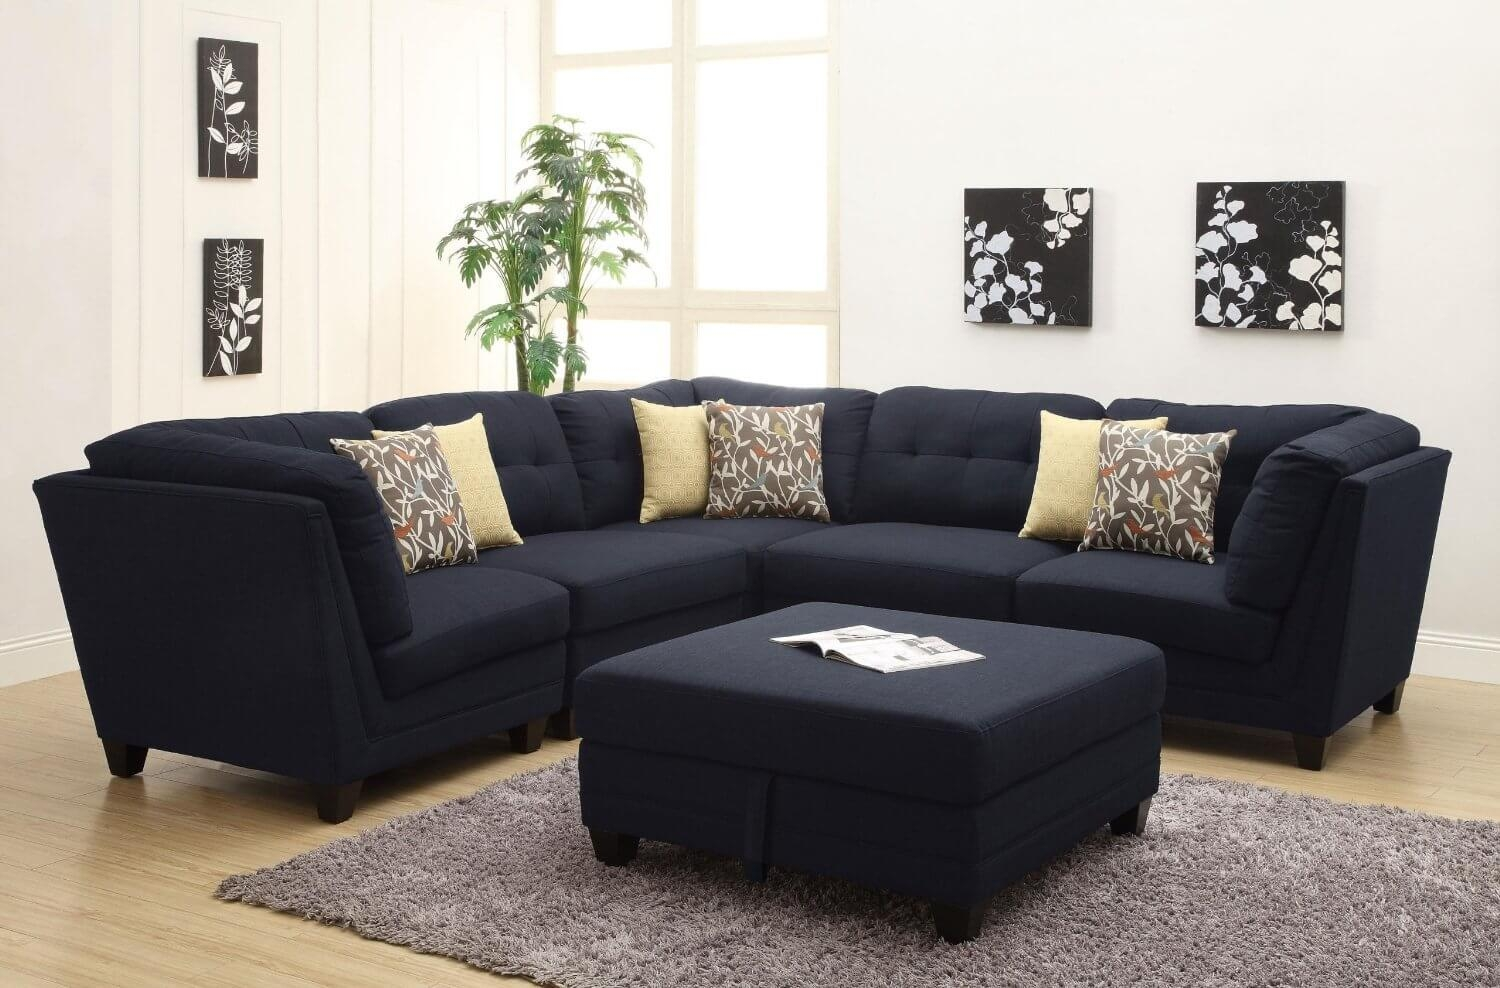 Sofas Tulsa – Home Design Ideas And Pictures Throughout Camel Colored Sectional Sofa (View 13 of 15)